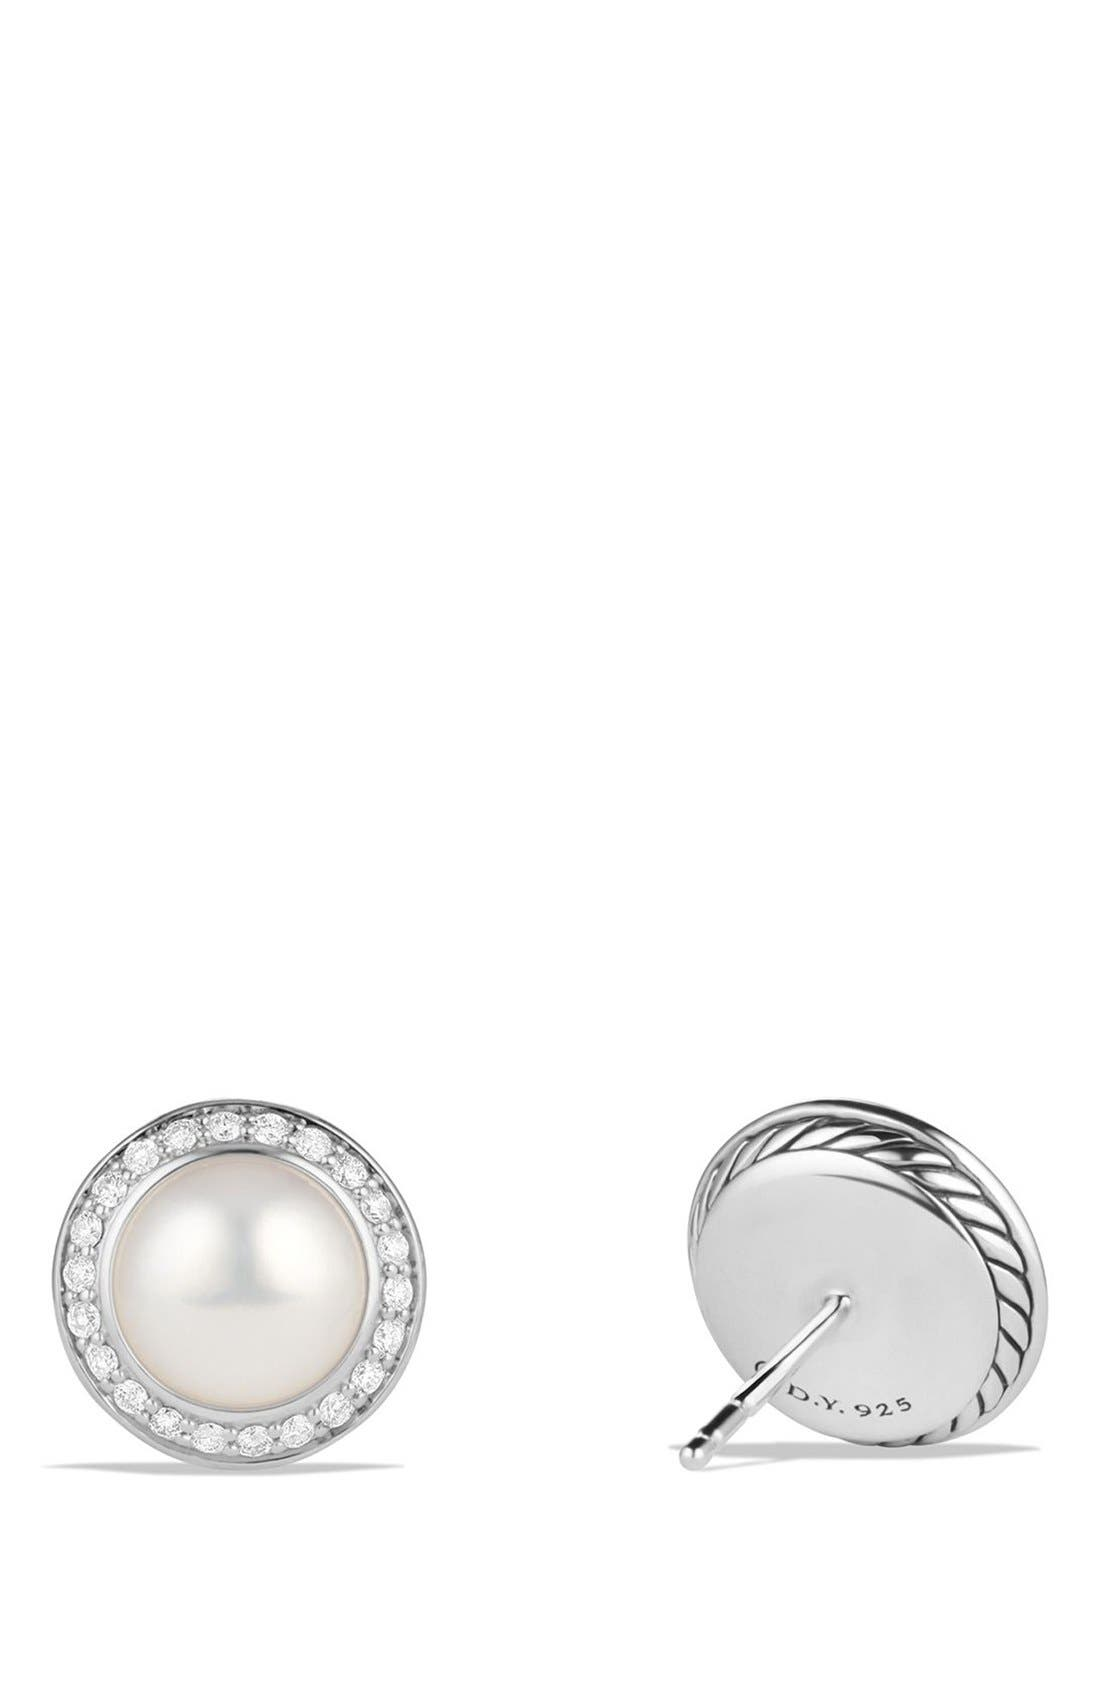 'Cerise' Petite Earrings with Pearls and Diamonds,                             Alternate thumbnail 3, color,                             SILVER/ PEARL